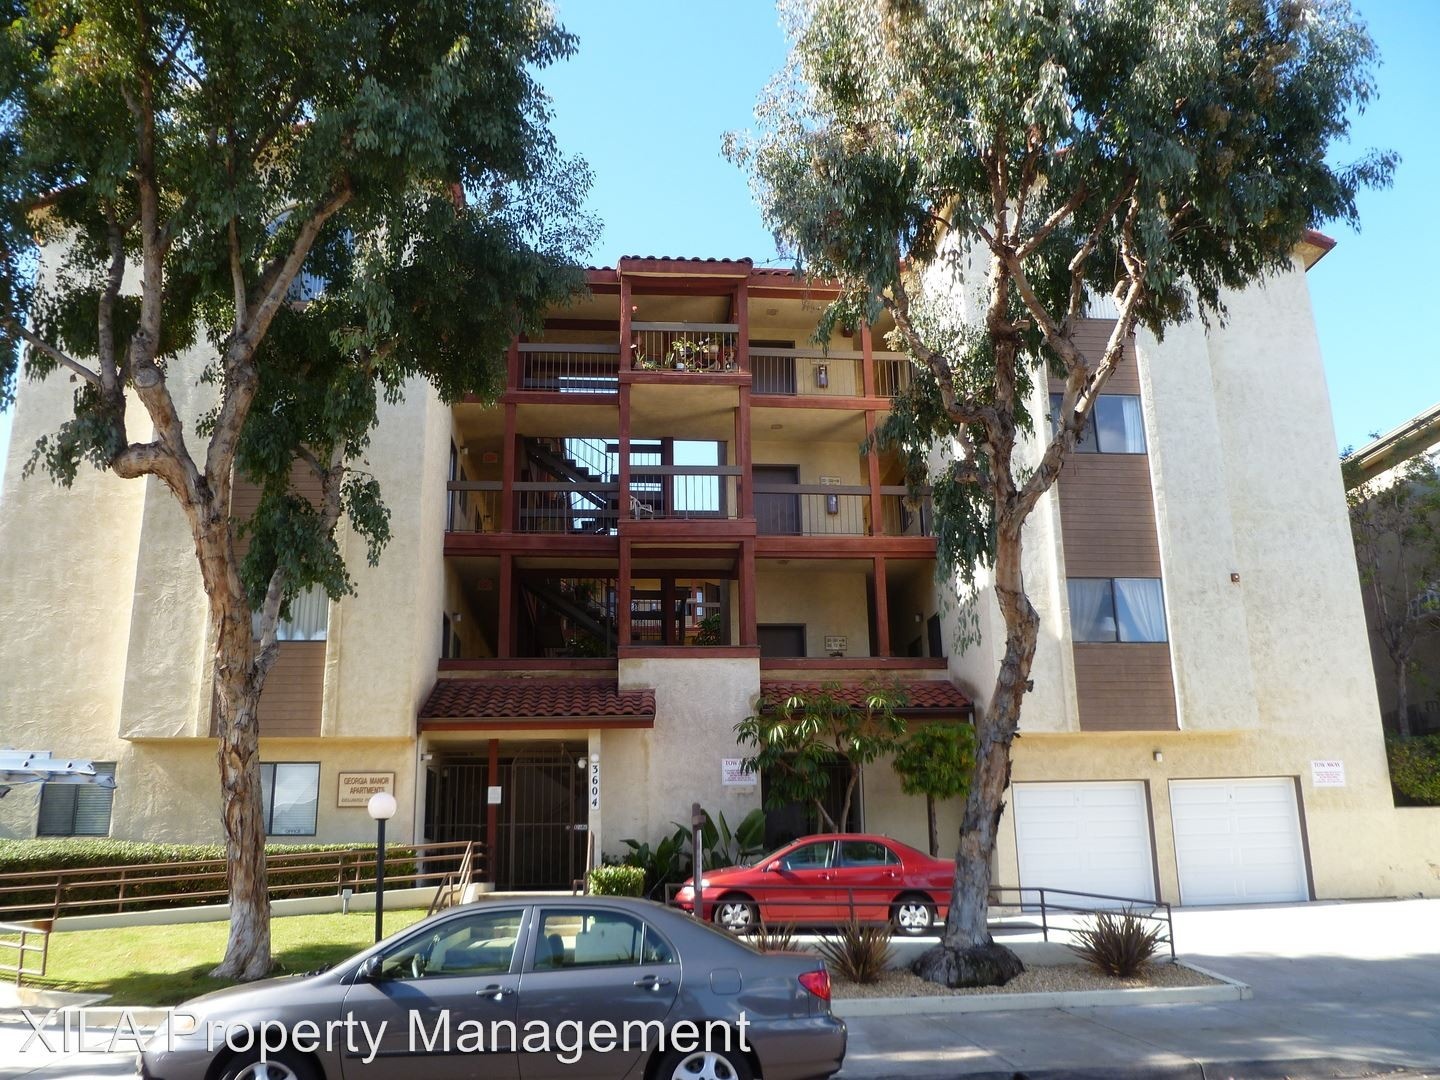 4030 Louisiana St 5 San Diego CA 1 Bedroom Apartment for Rent